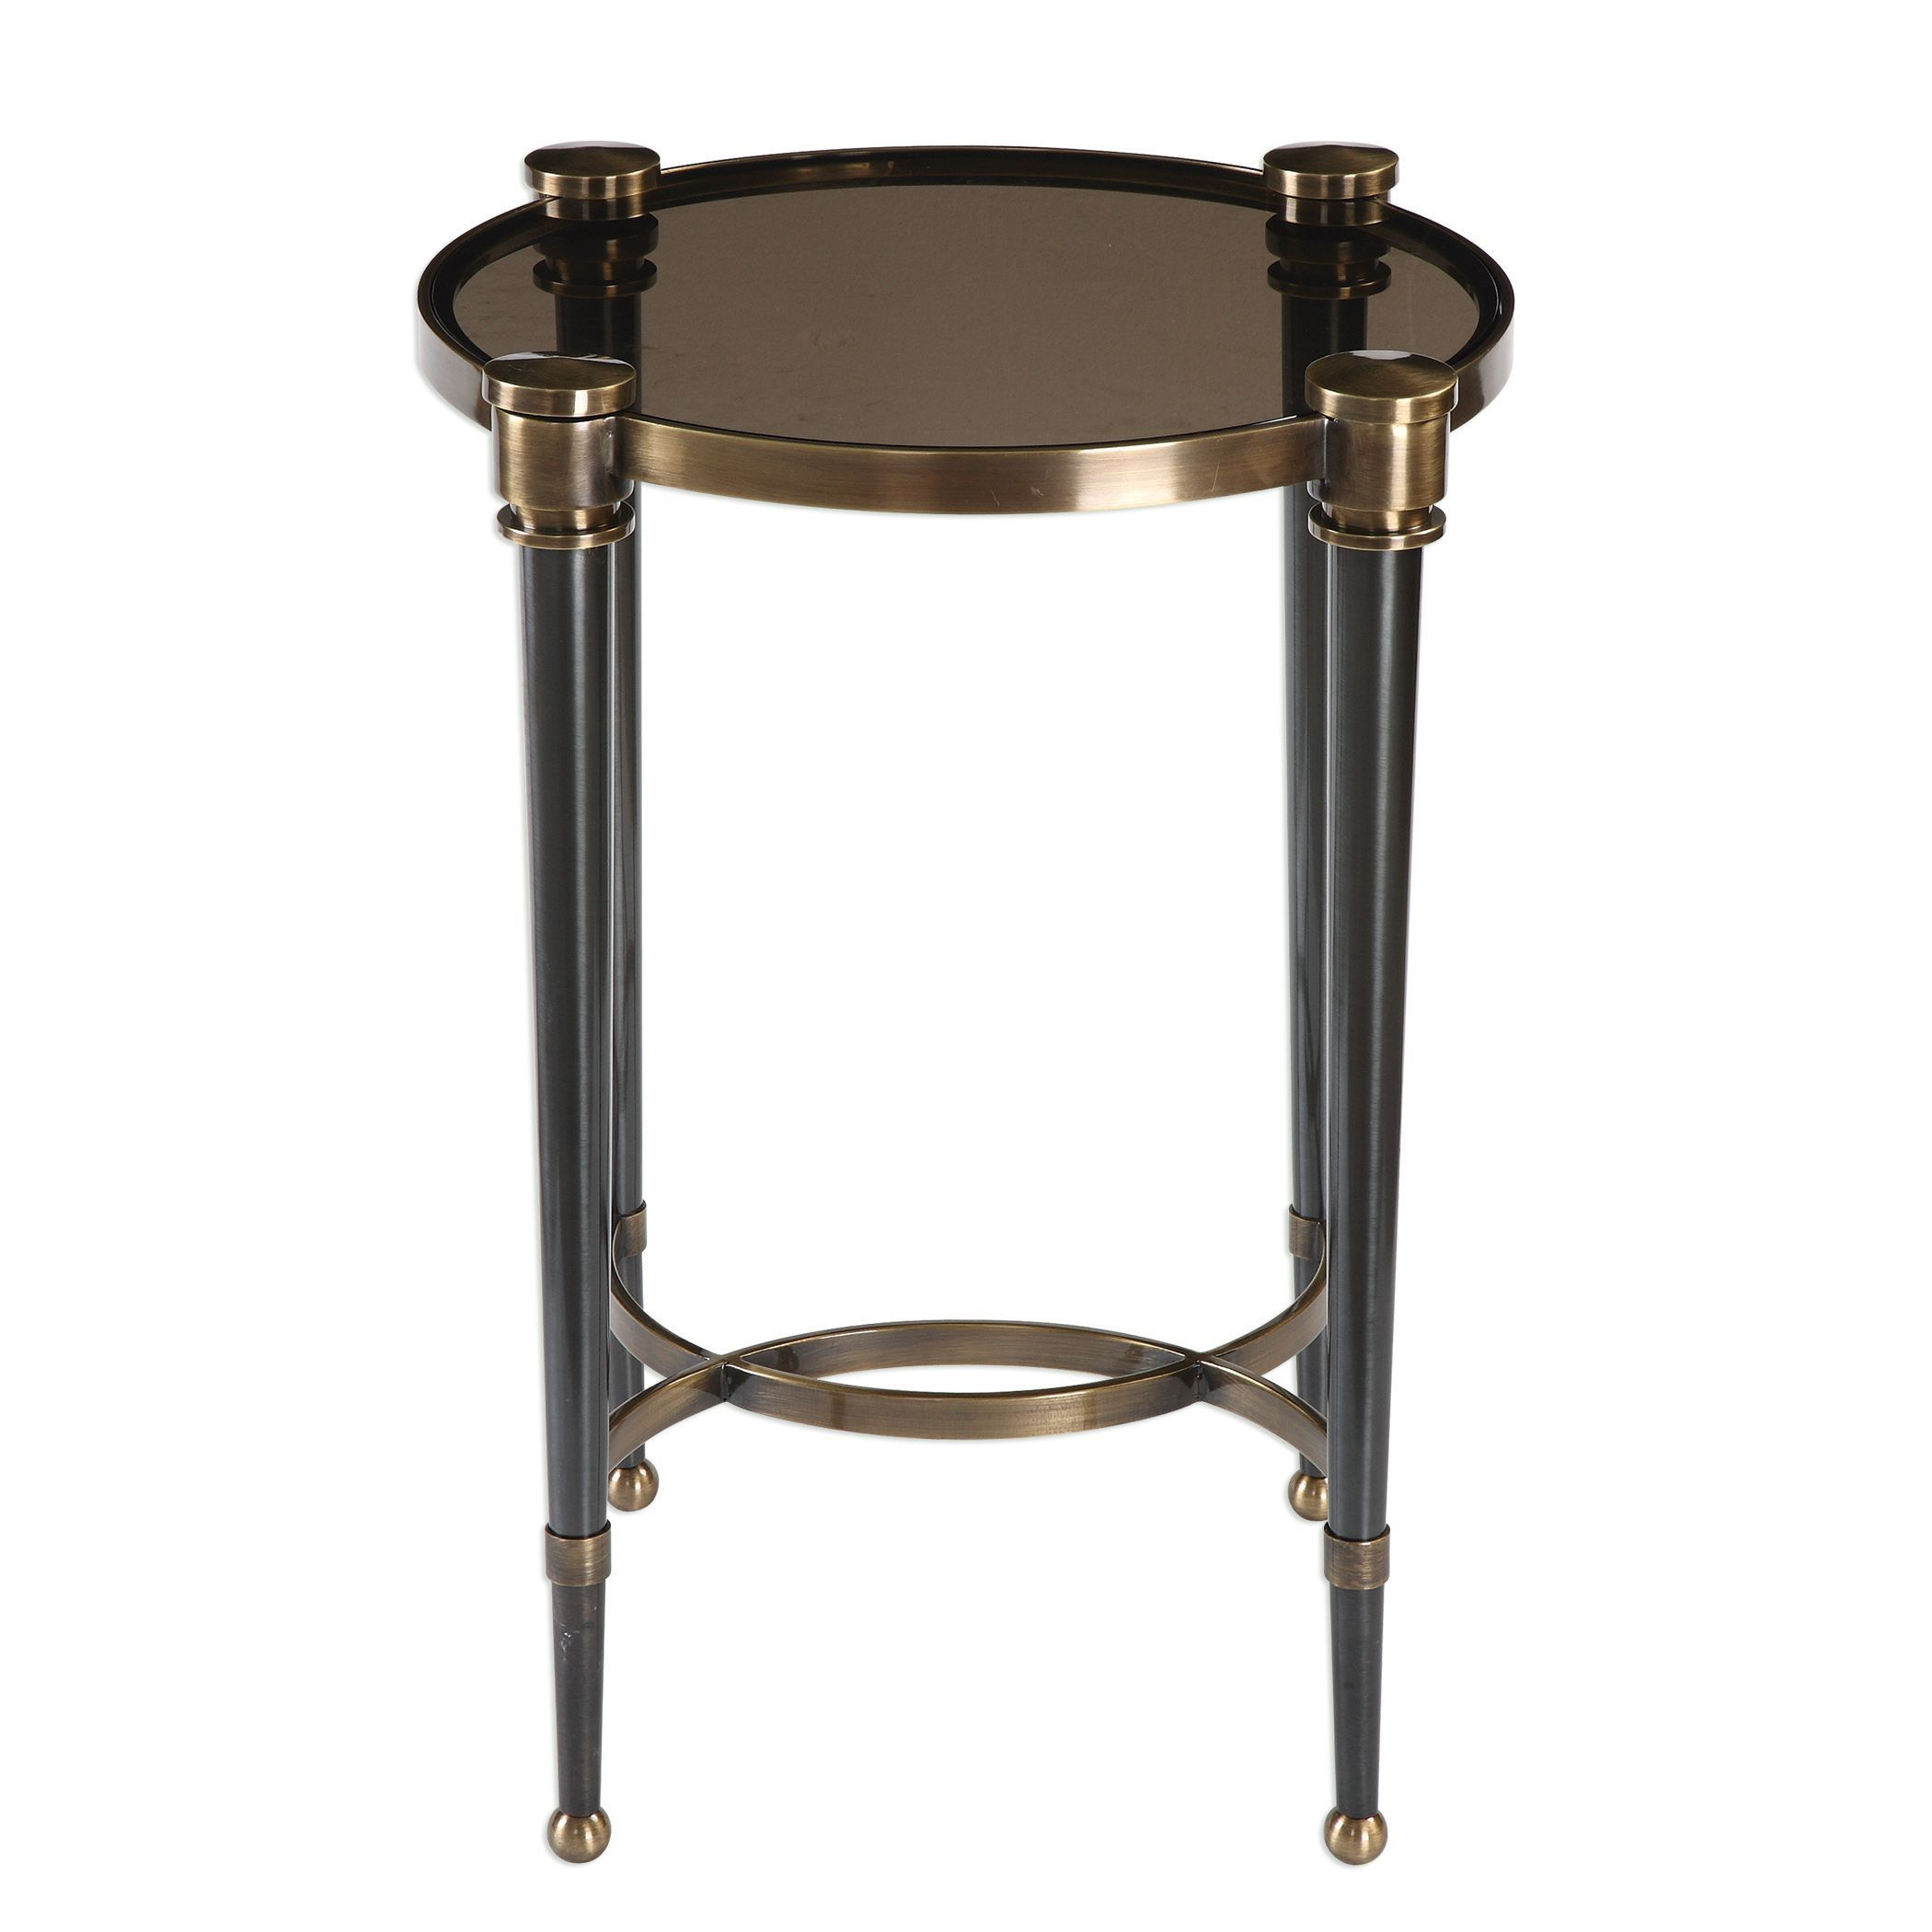 uttermost thora brushed black accent table free shipping rubati today tiffany shades drink long runner rugs rustic wood coffee market umbrella stand blown glass chandelier gold